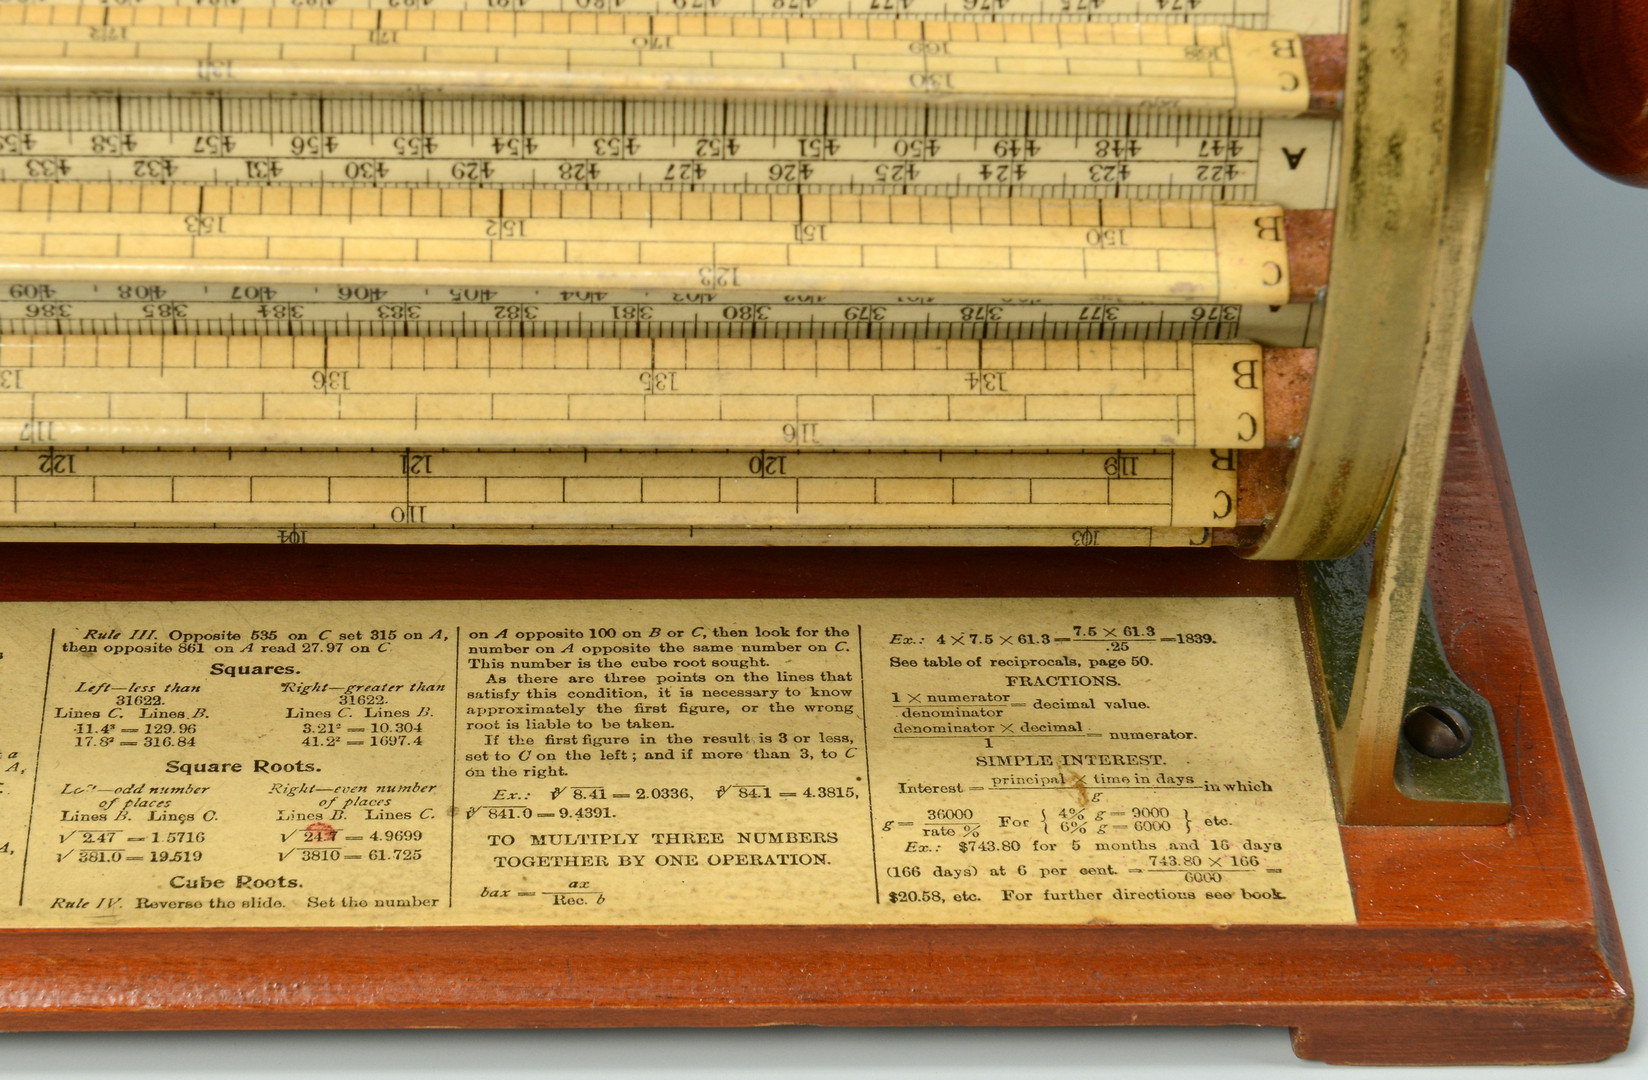 Lot 443: Thacher's Model 4012 Calculating Instrument